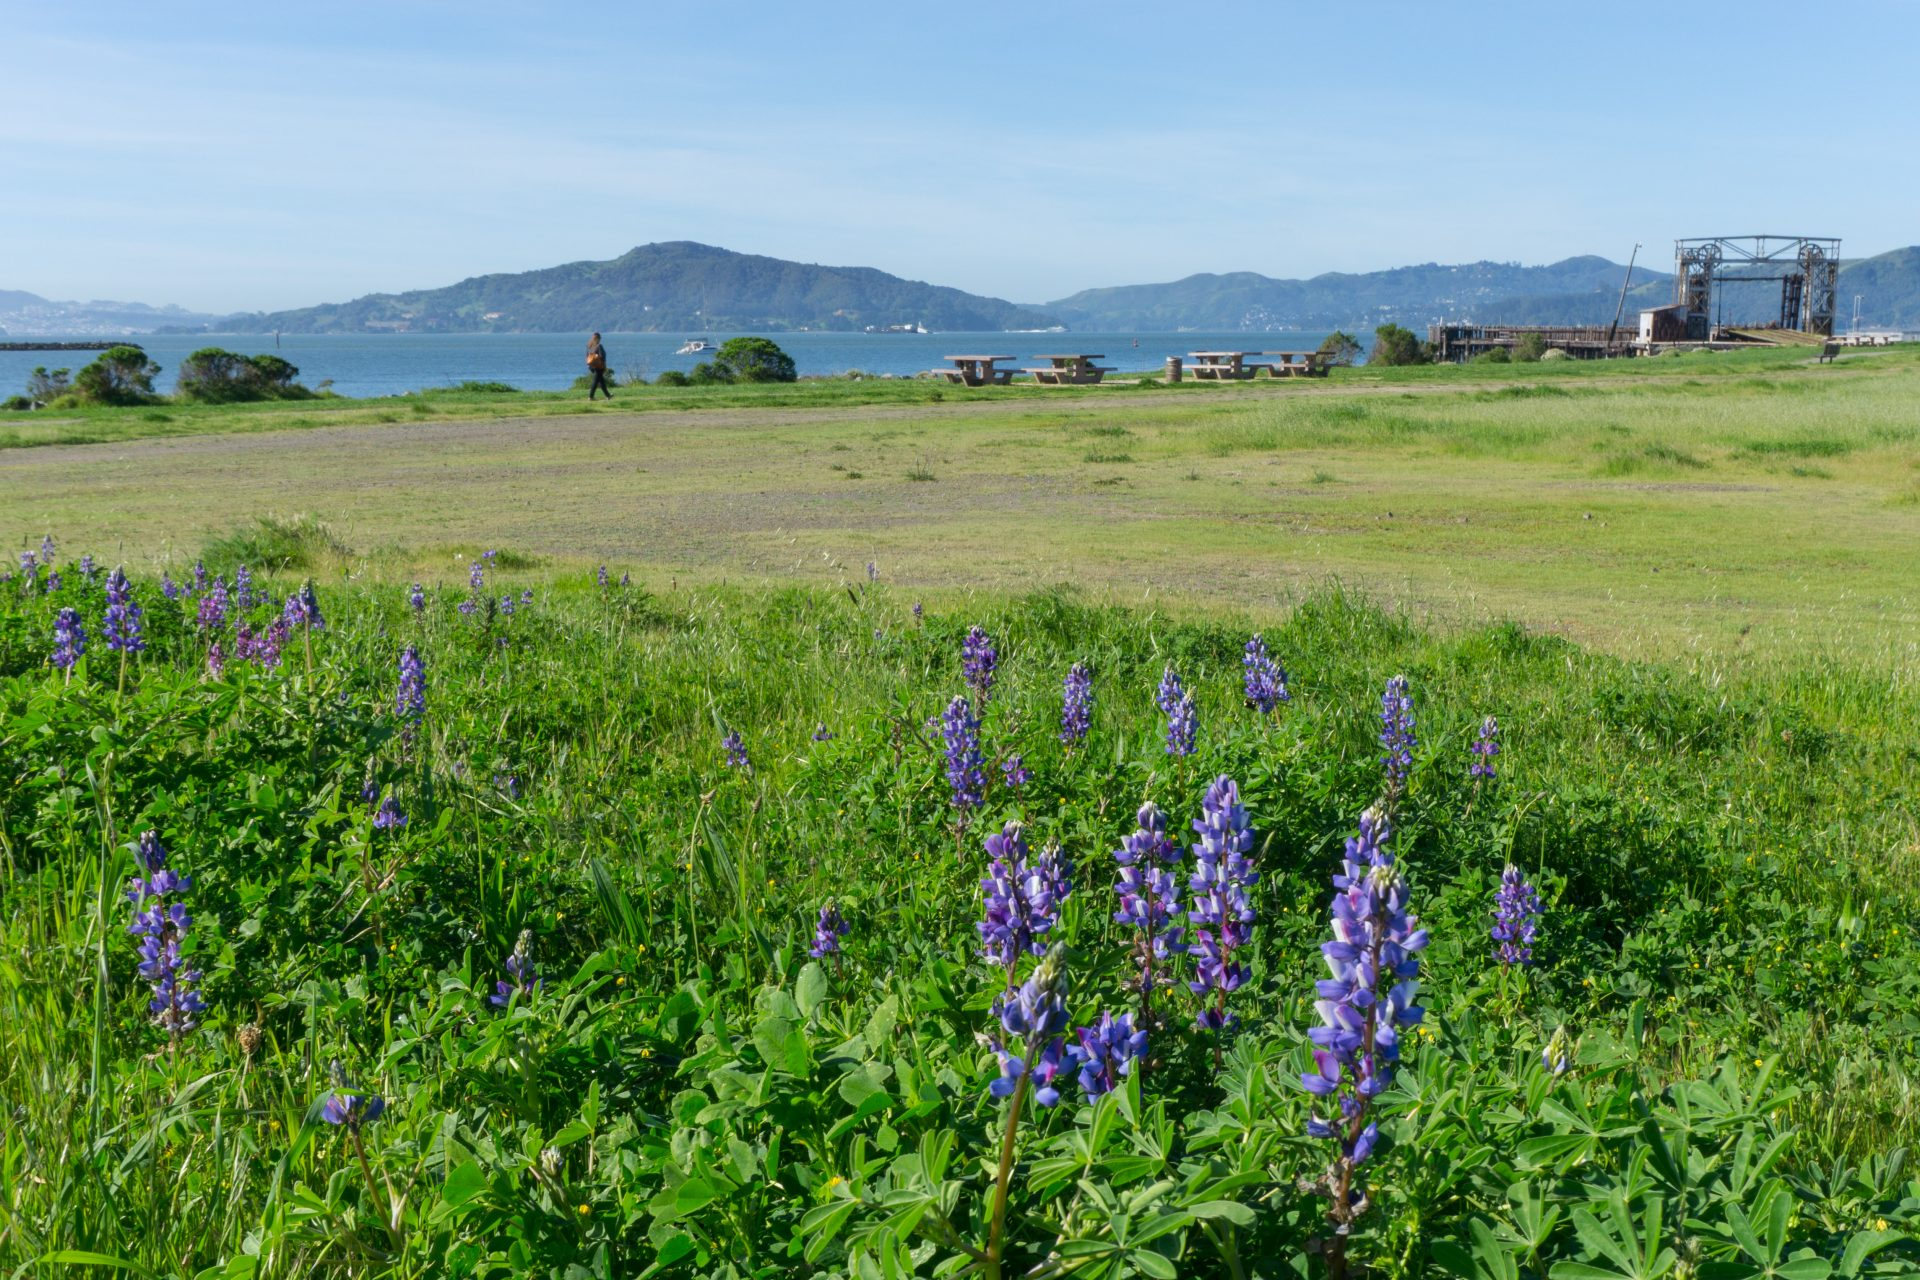 Purple lupine in foreground, grassy meadow, bay and Mt Tamalpais in distance